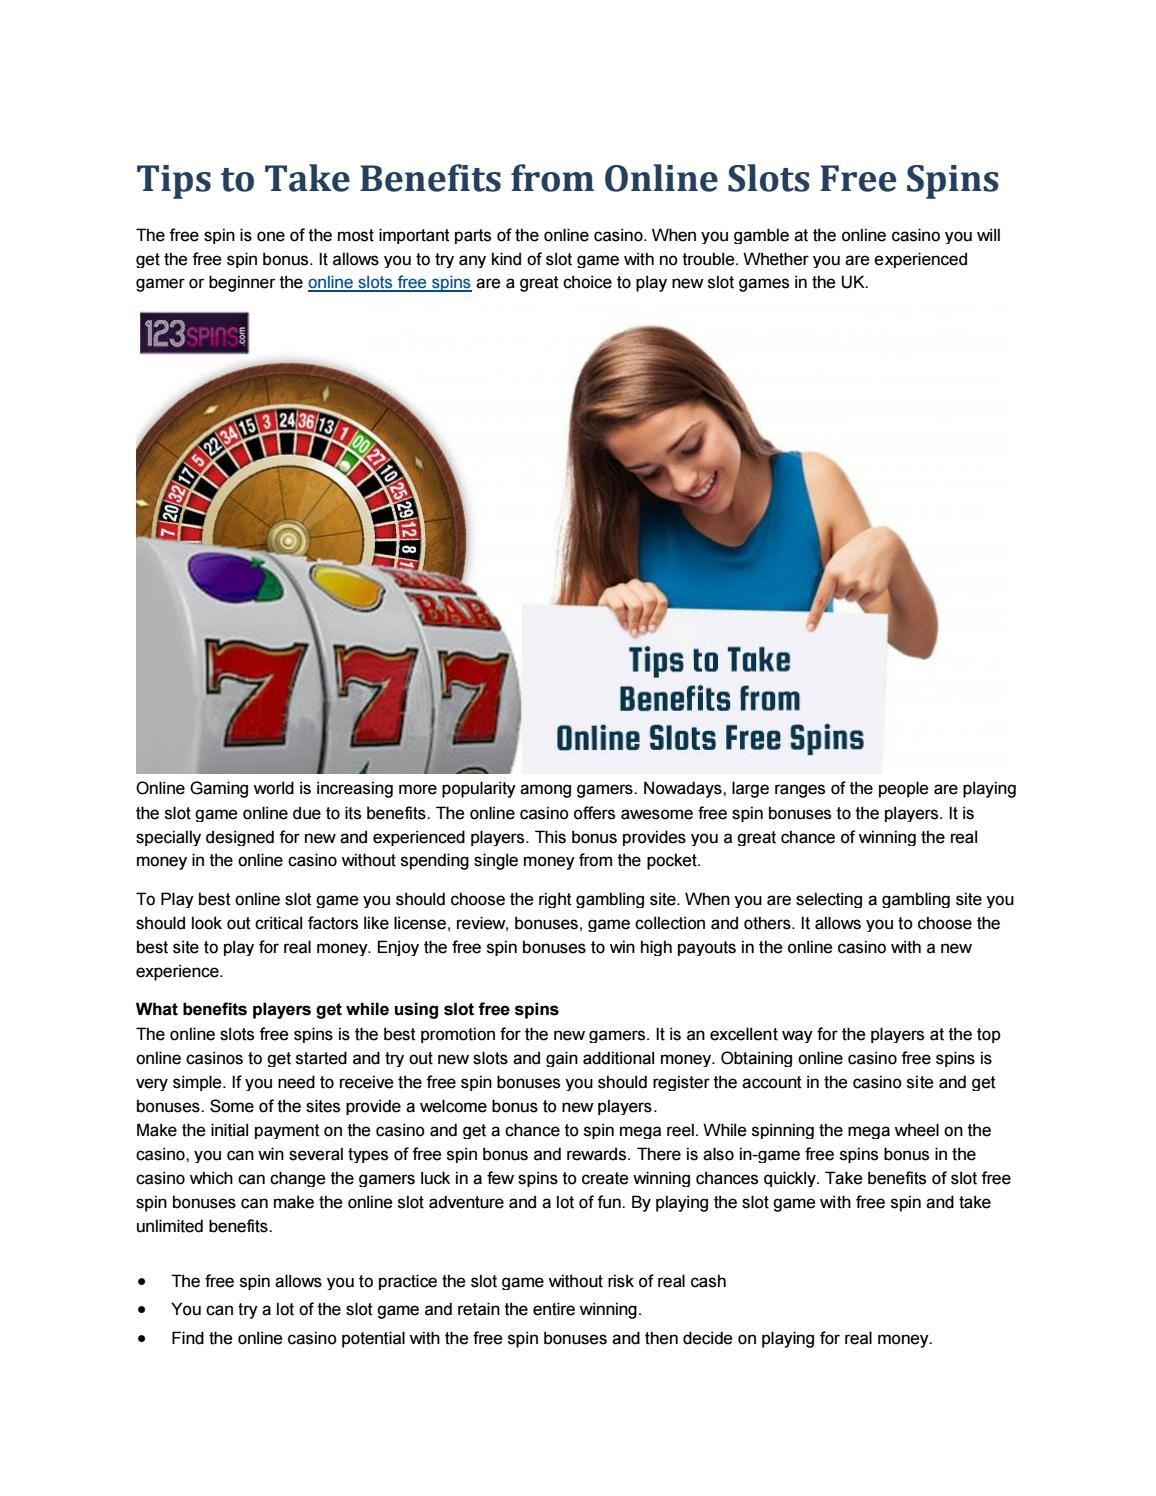 Tips To Take Benefits From Online Slots Free Spins By 123spins Issuu